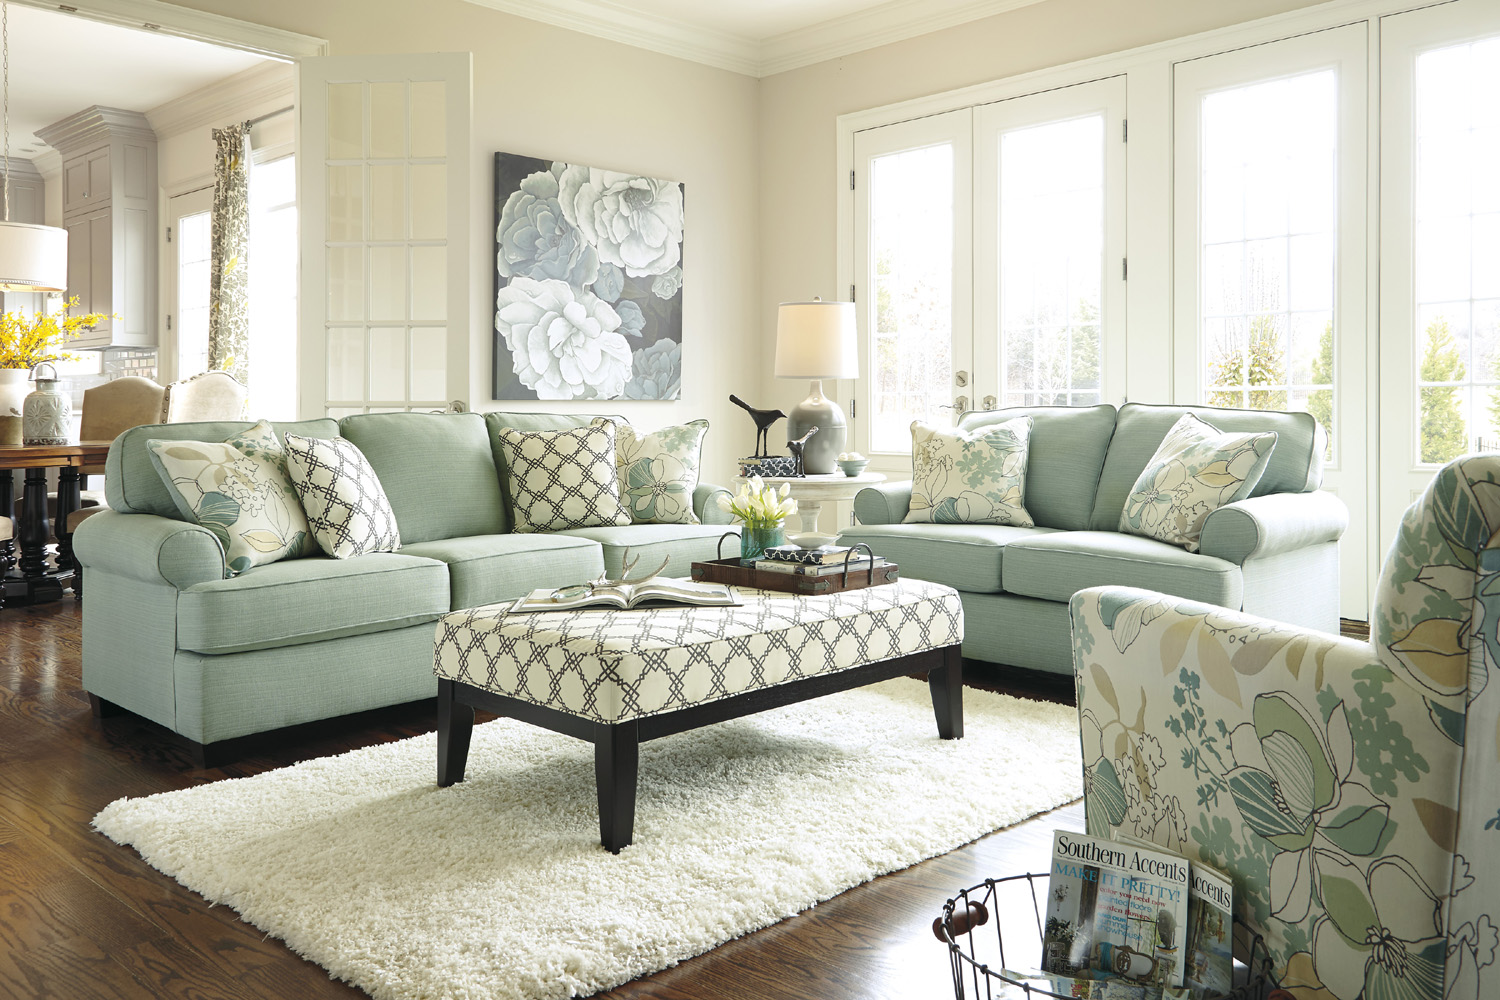 Daystar Sofa by Ashley - Home Gallery Stores | home | Pinterest ...